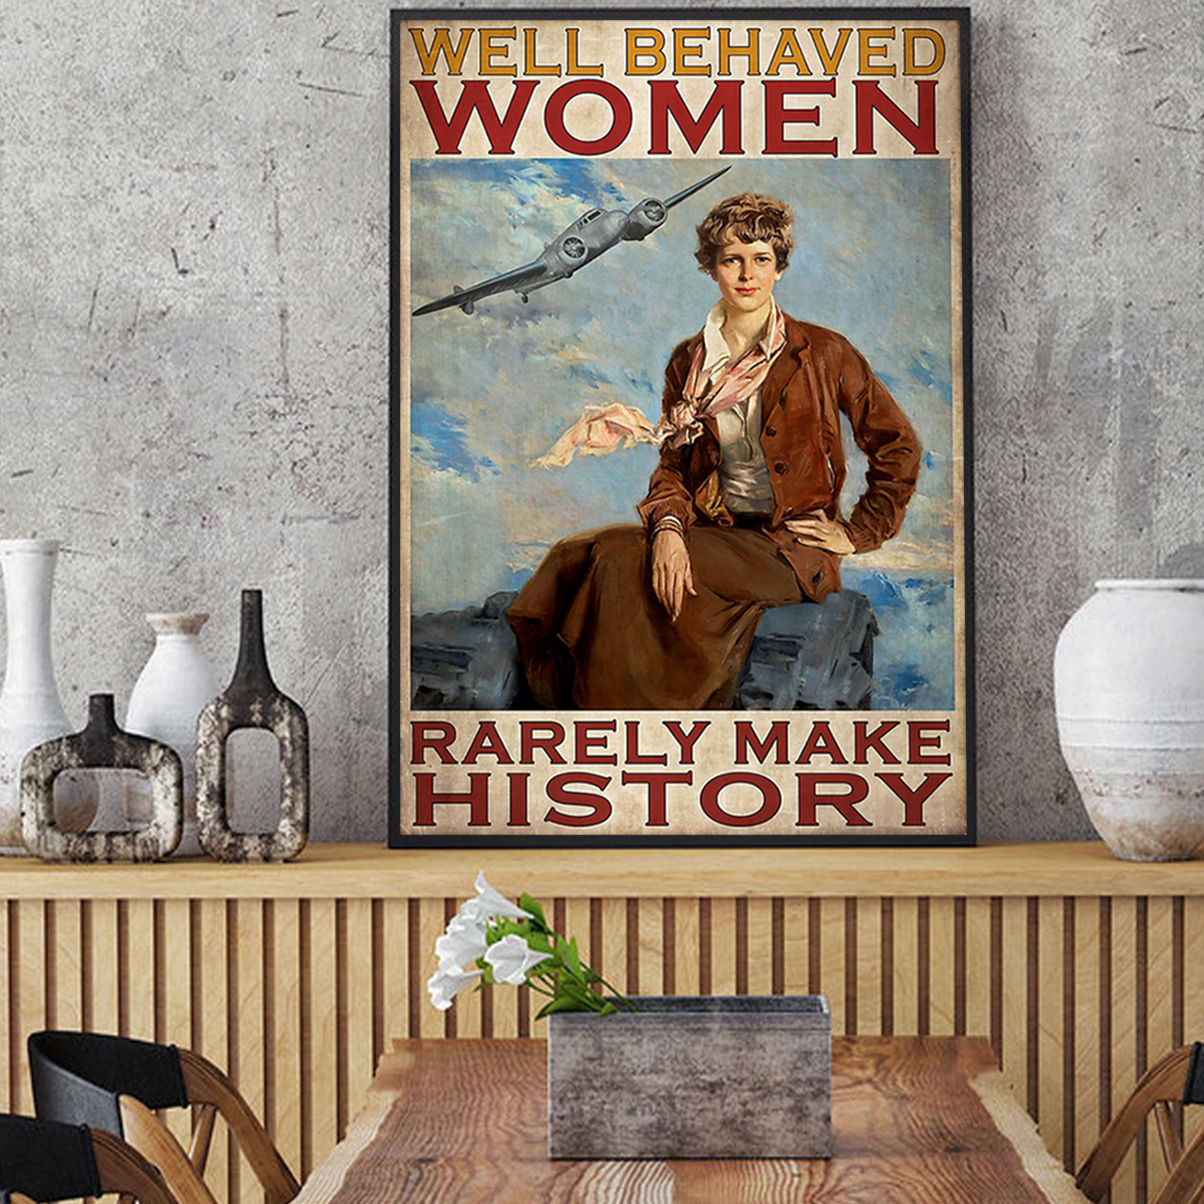 Flight attendant well behaved women rarely make history poster A2